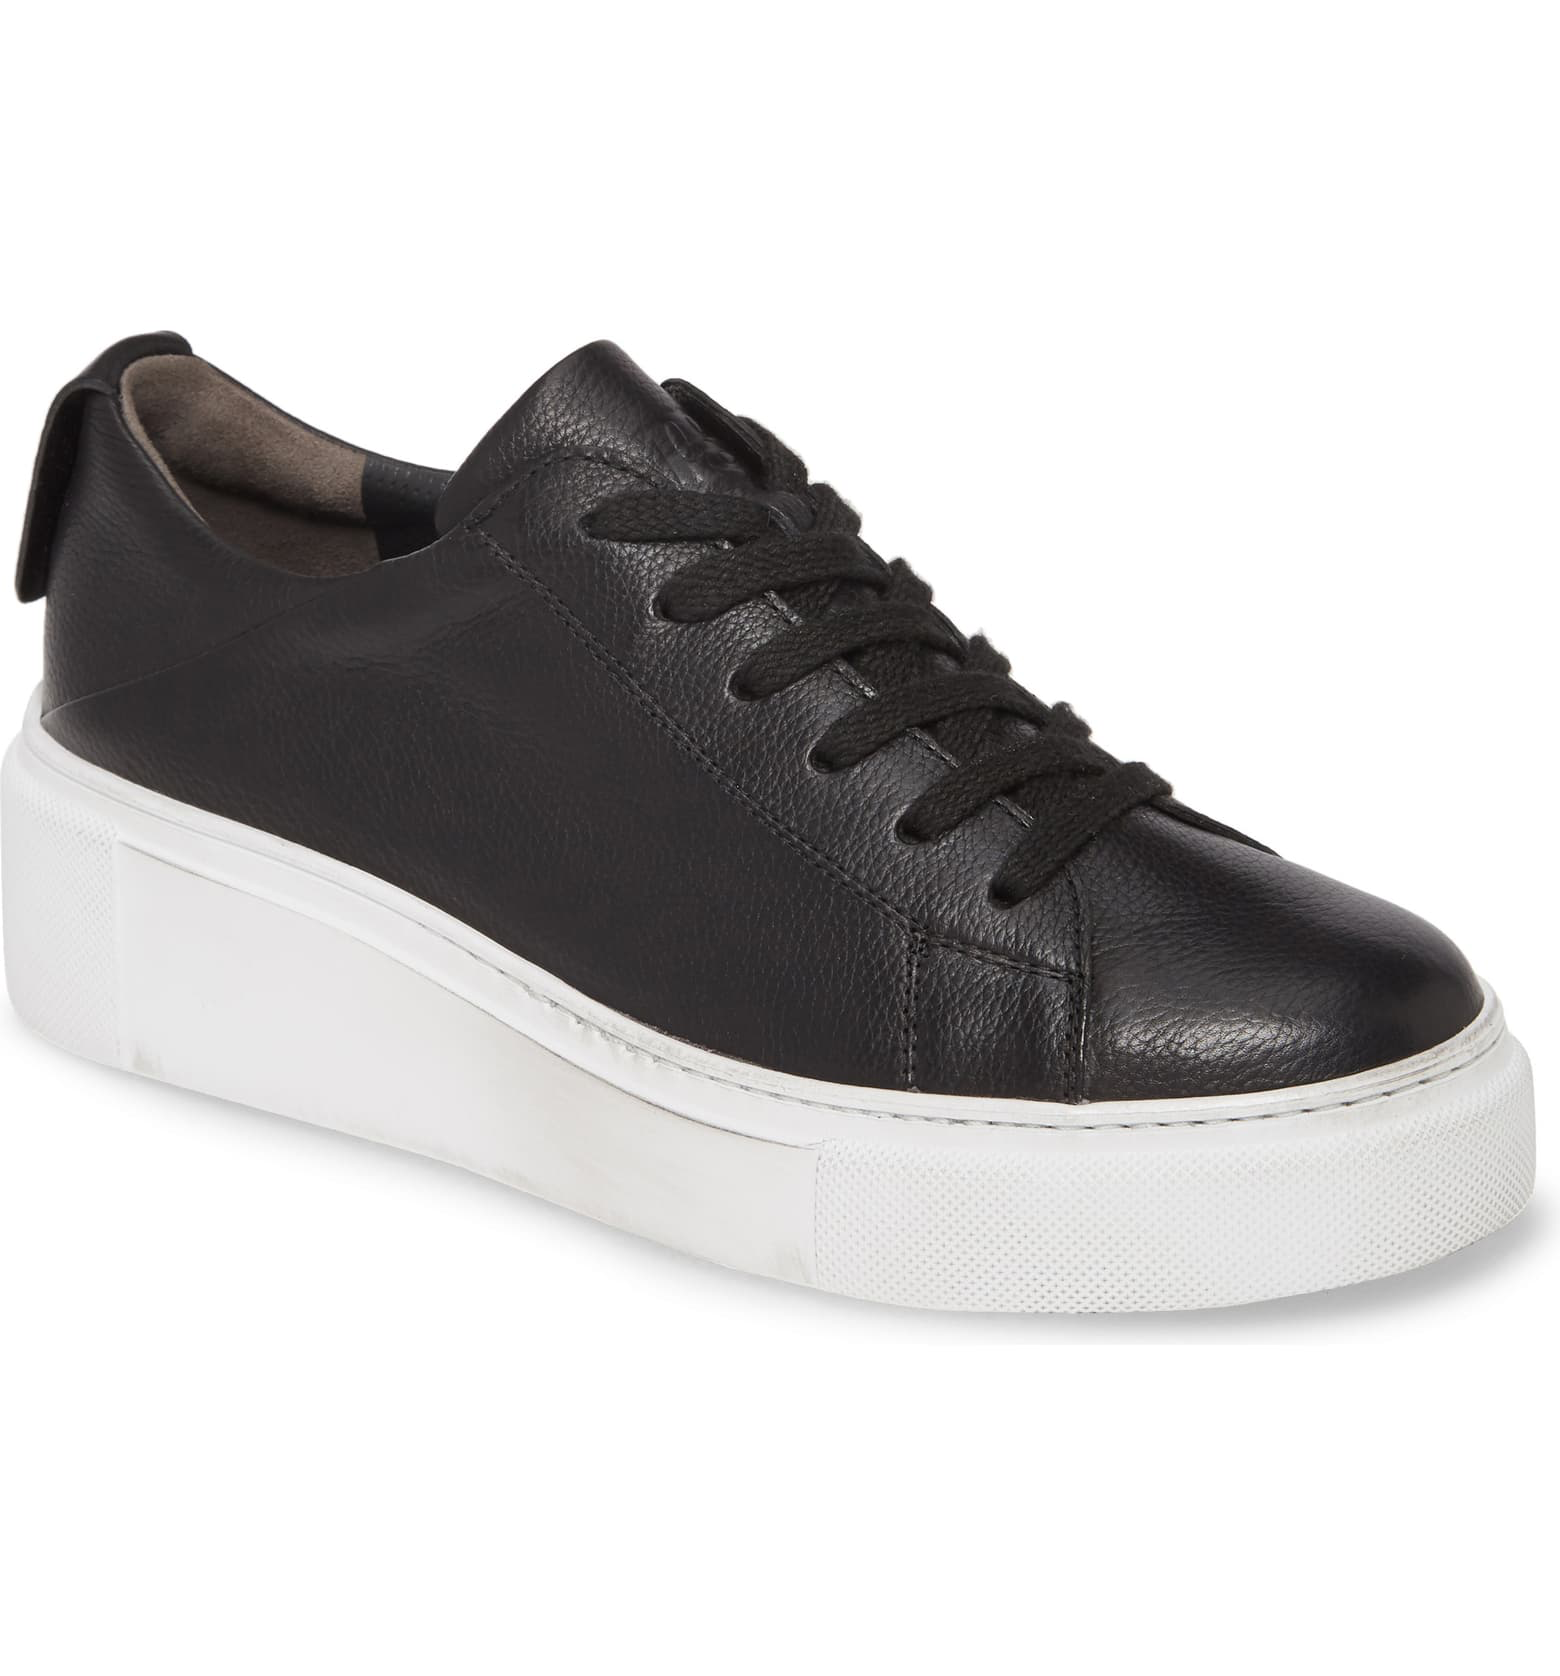 Debbie Wedge Sneaker | Black Leather